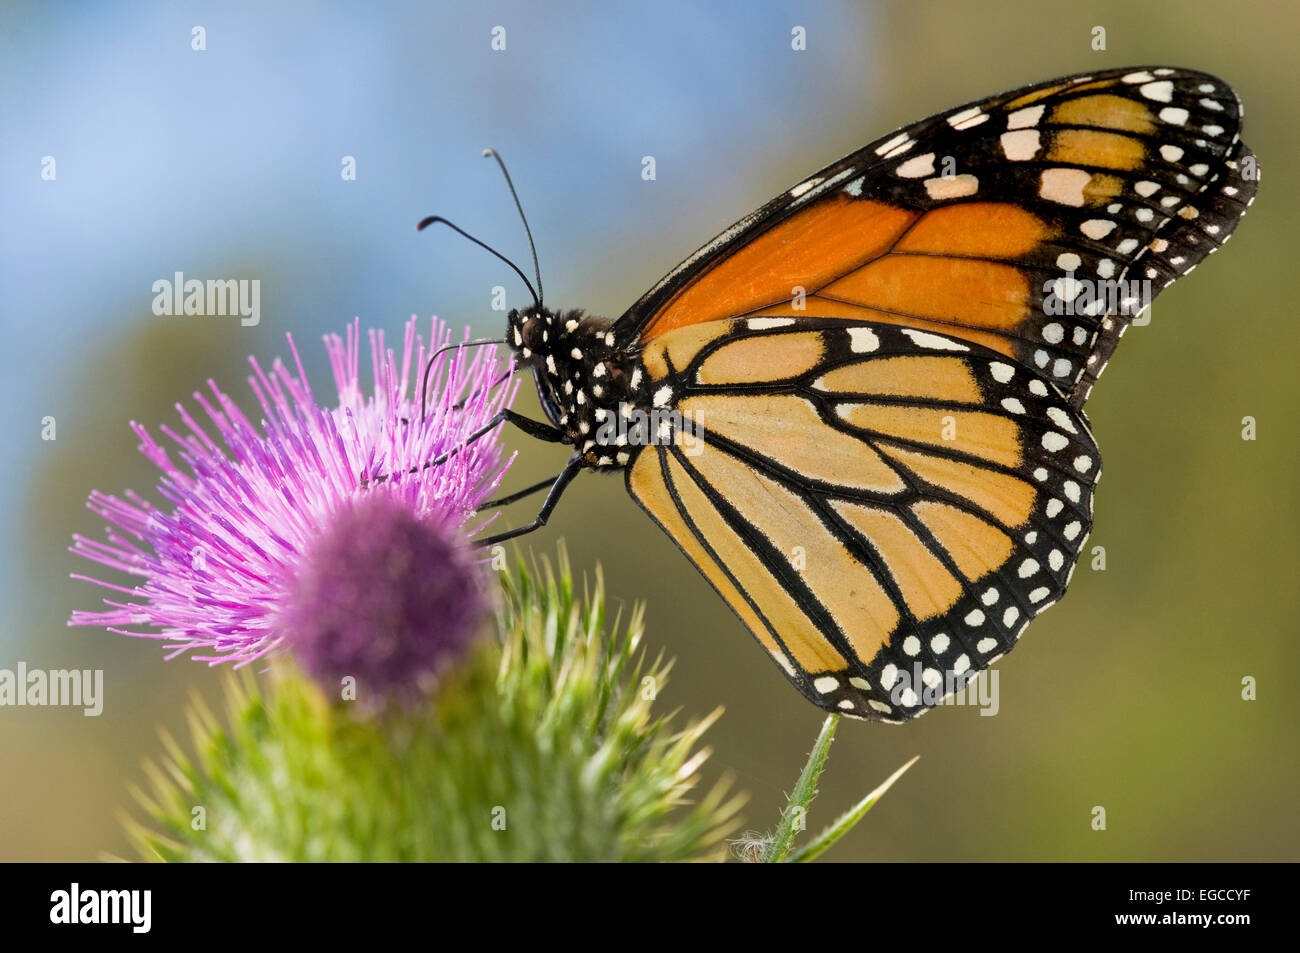 The monarch butterfly 'Danaus plexippus' belongs to the family Nymphalidae. It's considered to be the - Stock Image